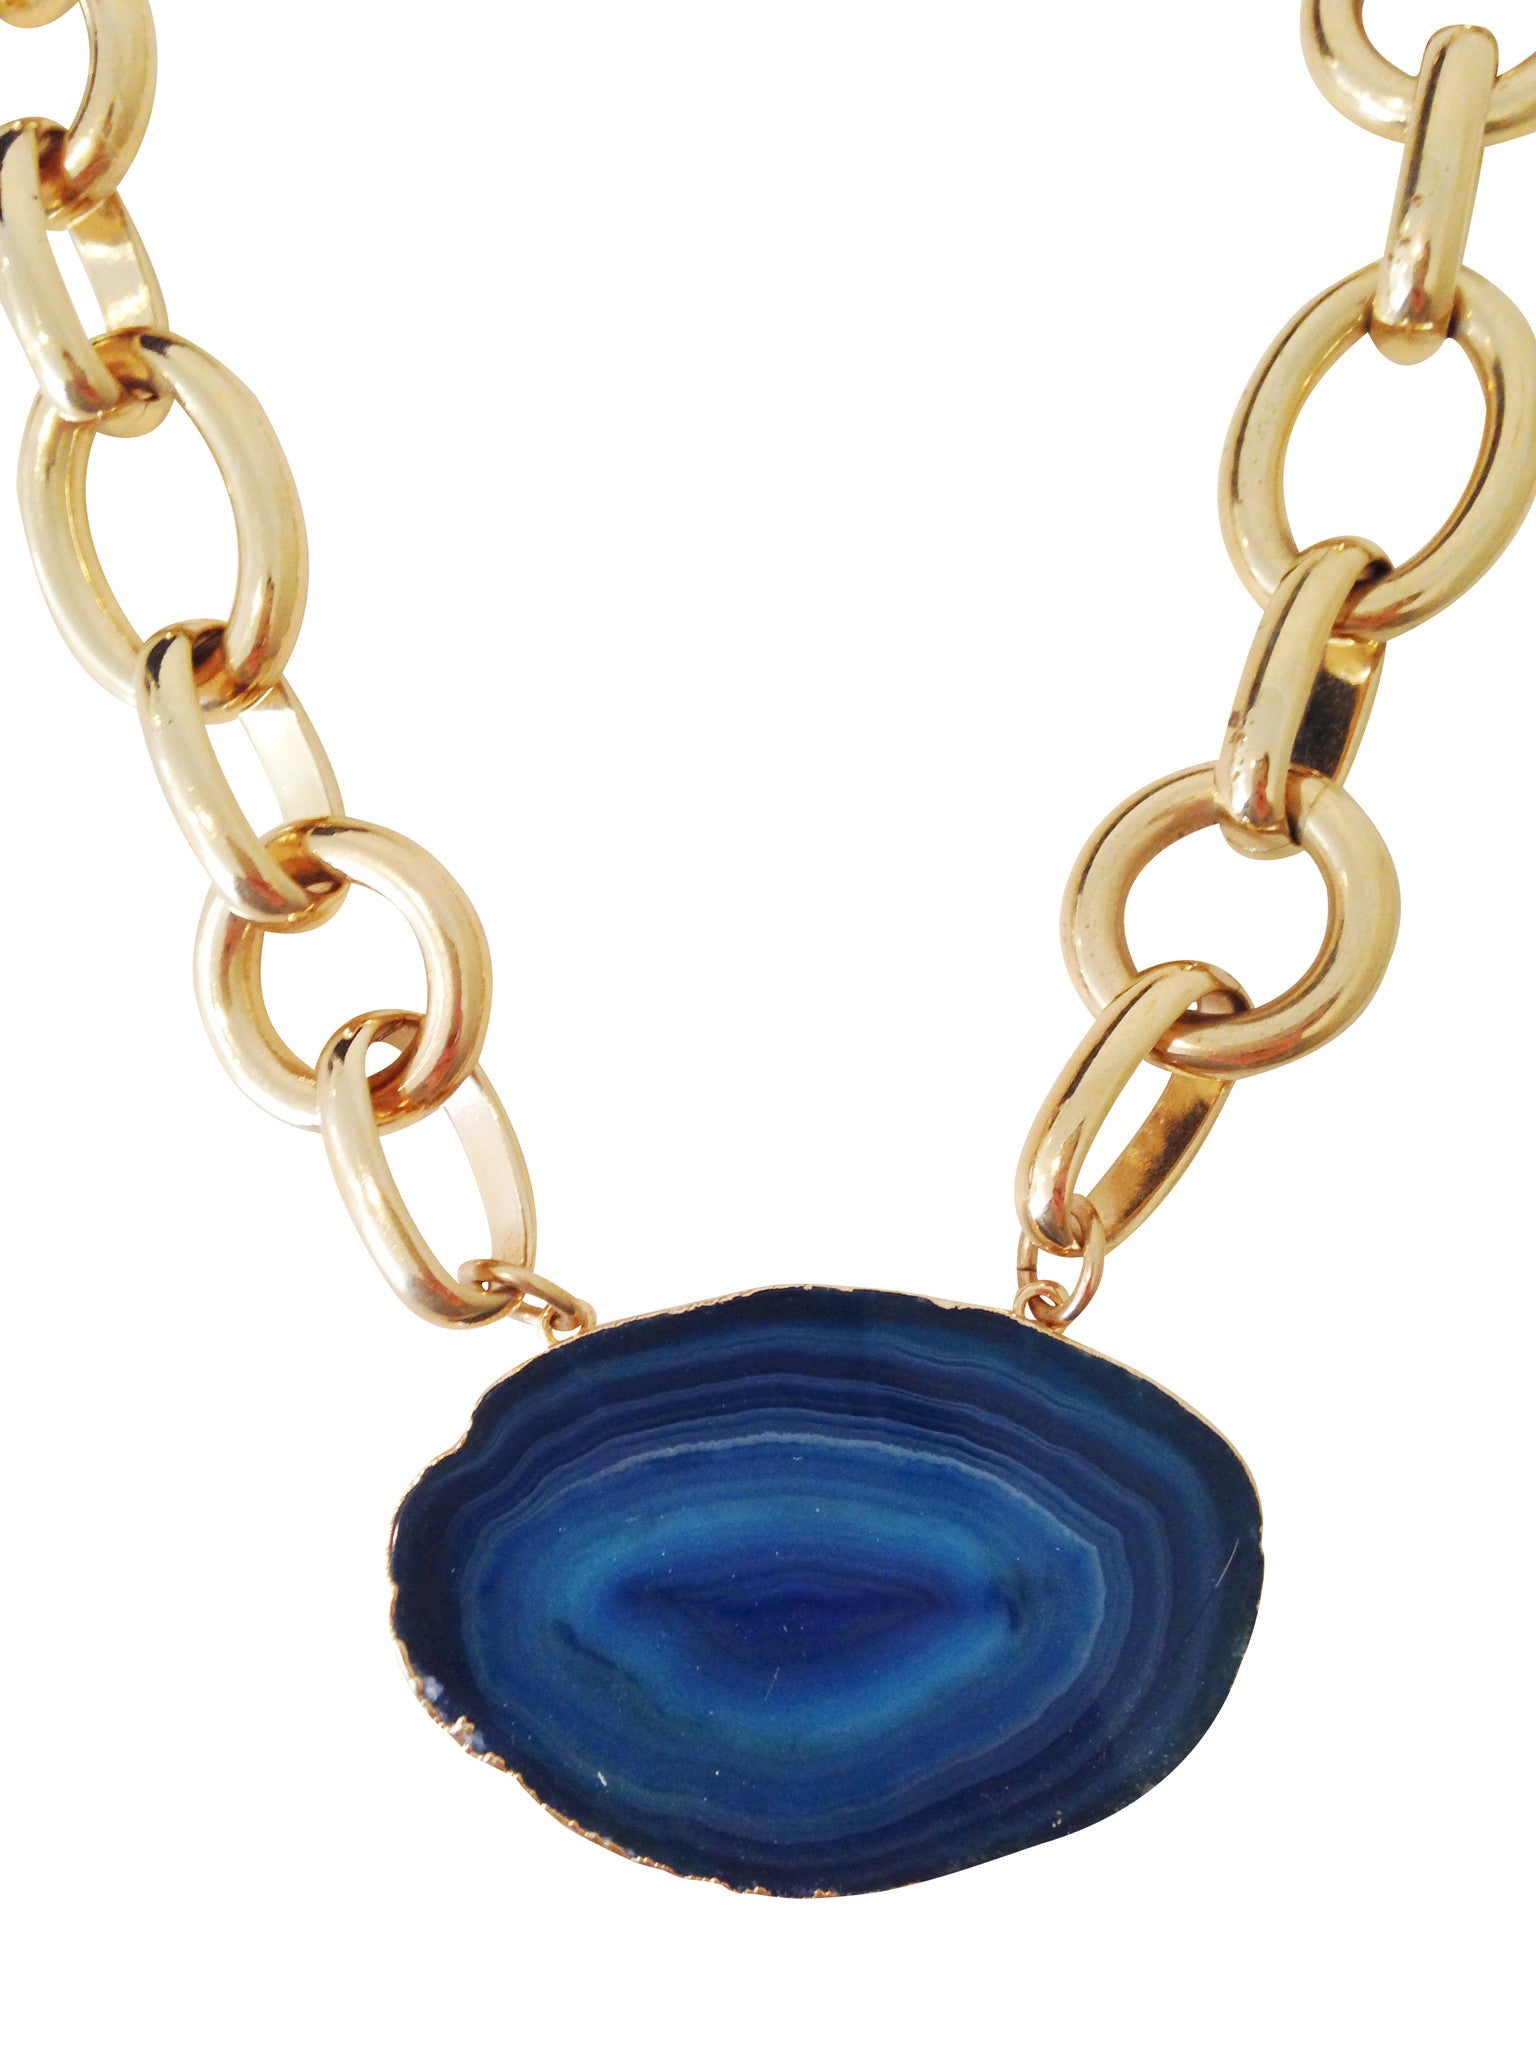 Molly Jane Designs Agate Slice Pendant Necklace